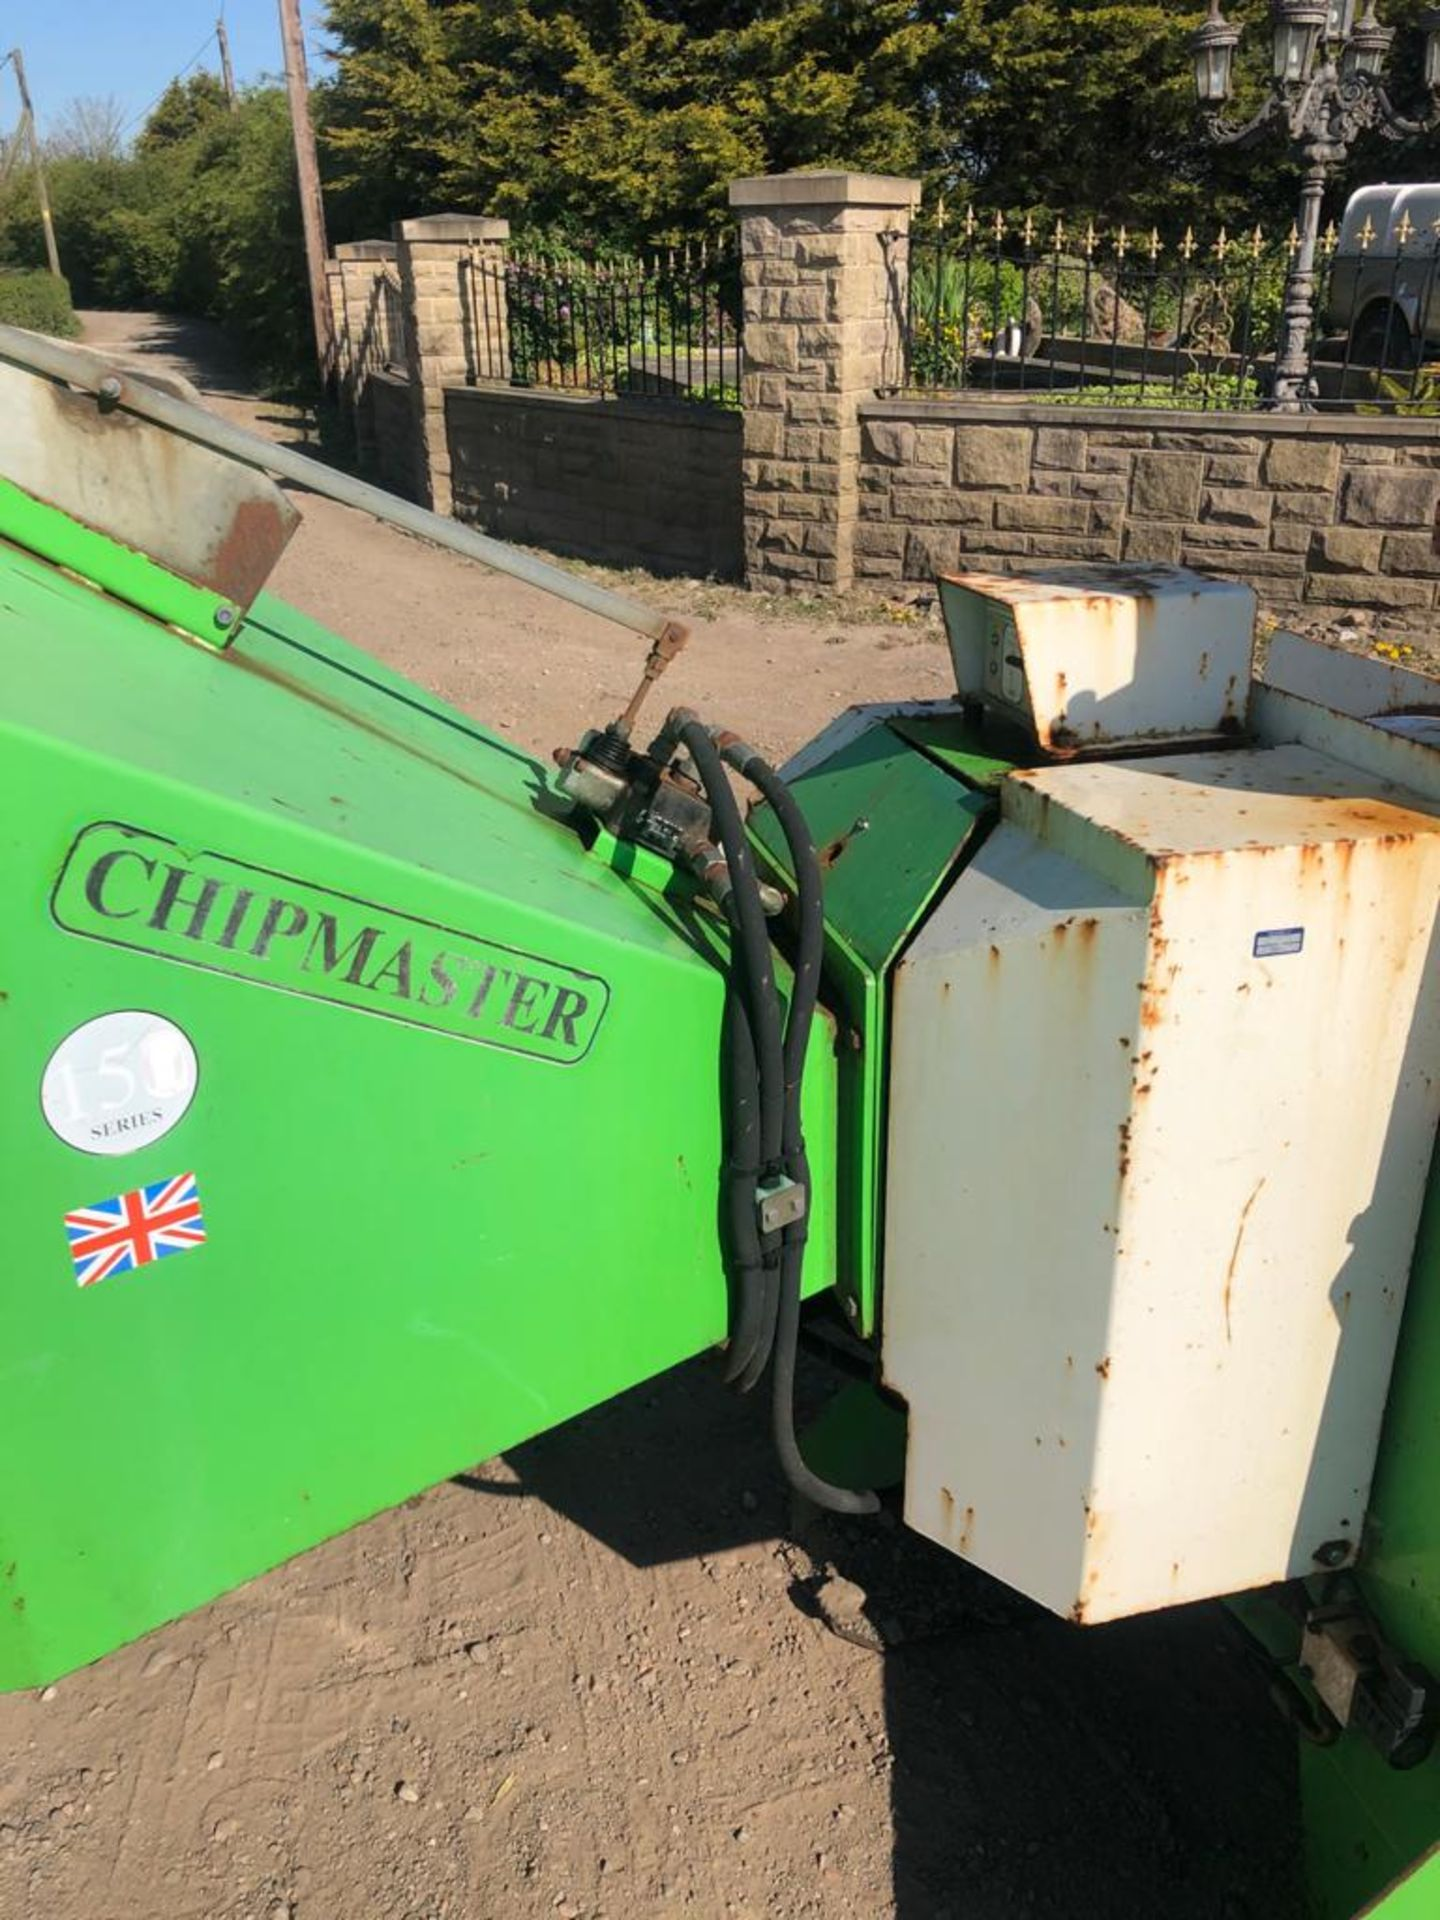 GREENMECH WOOD CHIPPER, 3 POINT LINKAGE, WORKS AND CUTS *PLUS VAT* - Image 3 of 8